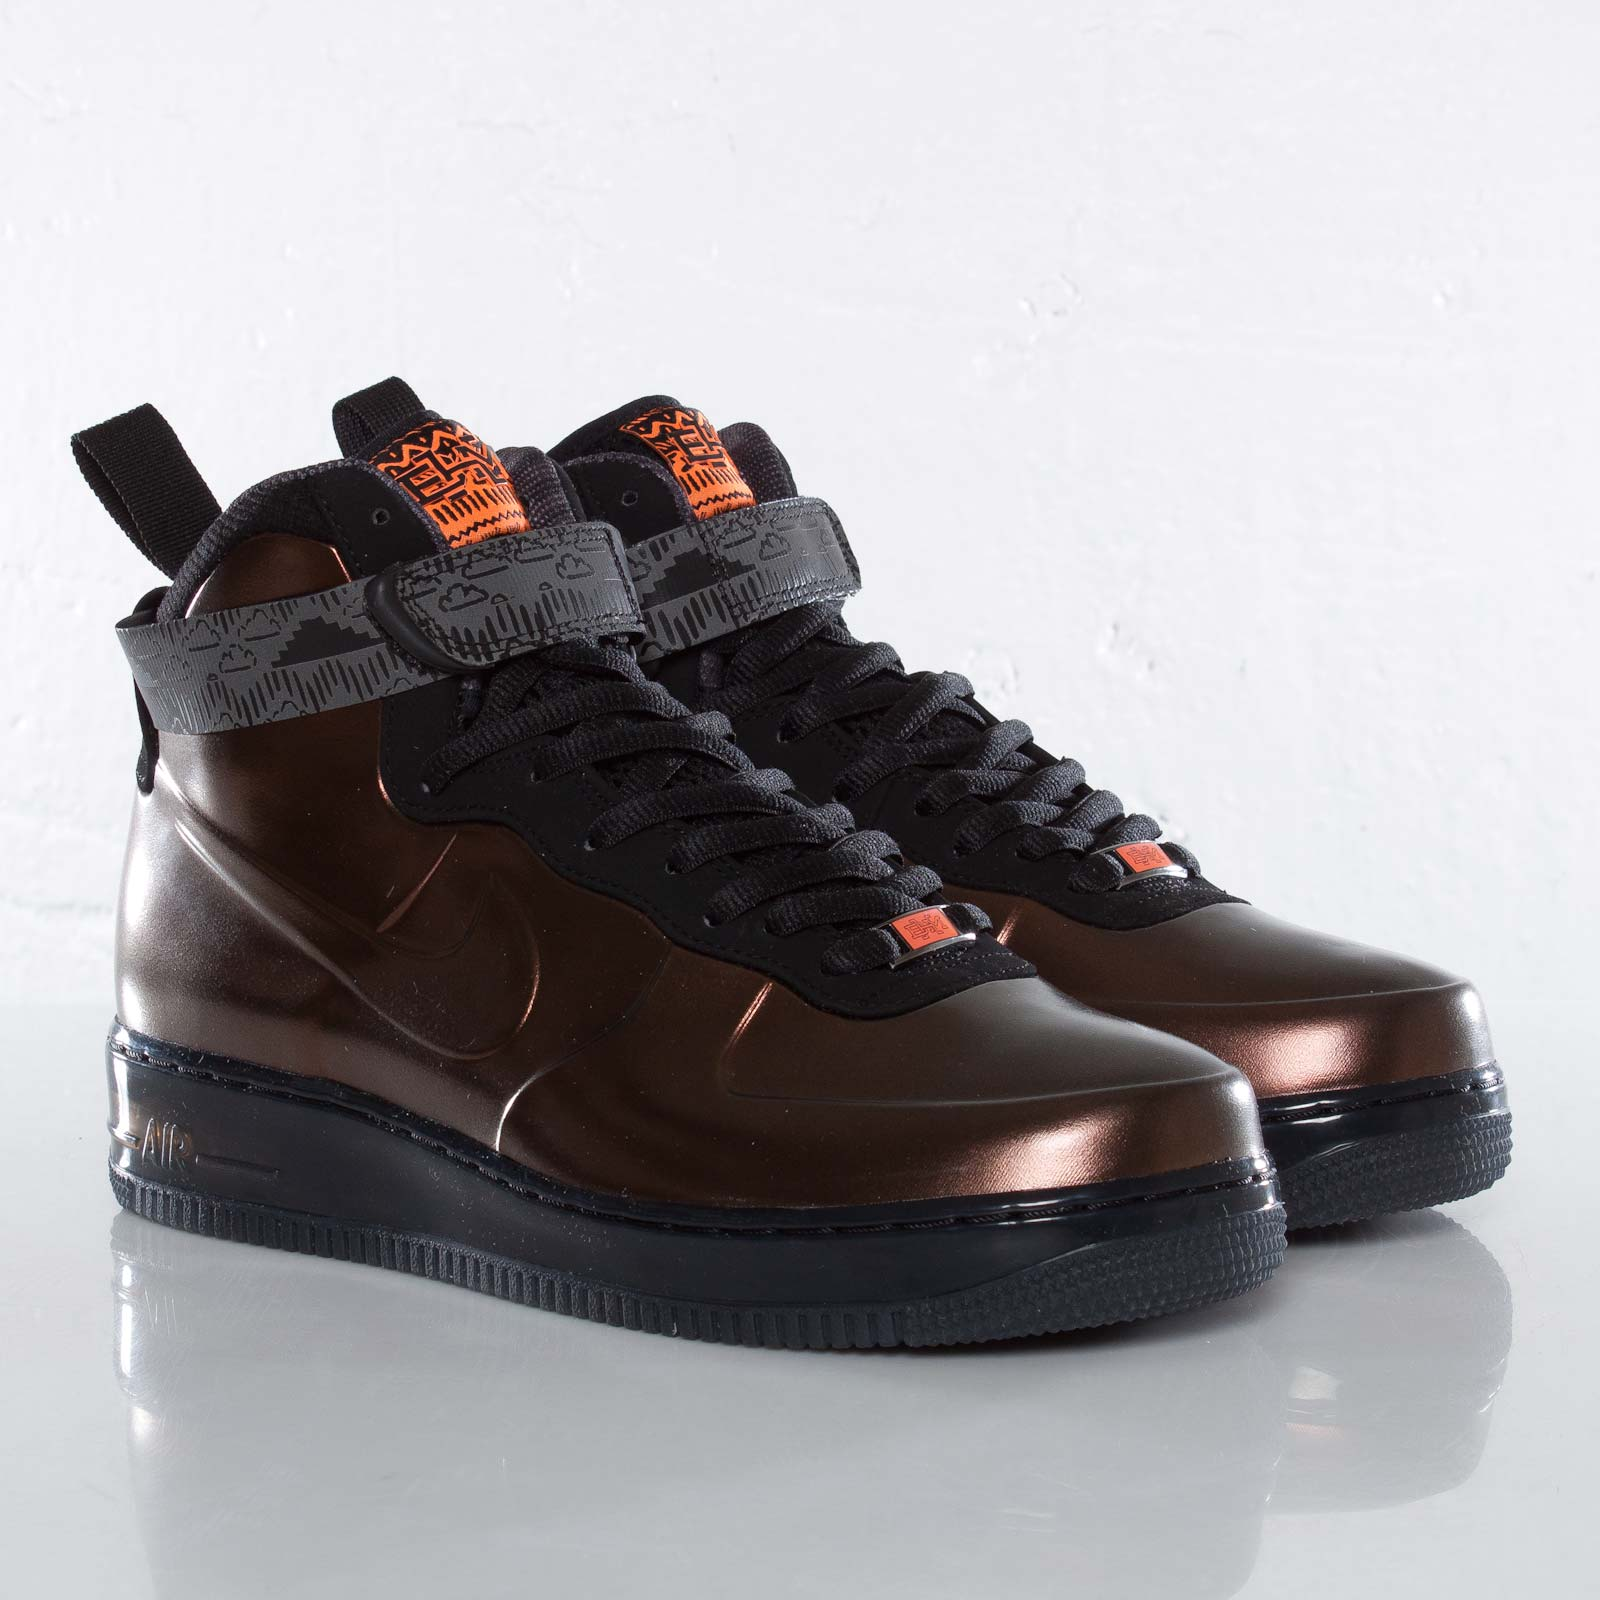 quality design c90bc 28040 Nike Air Force 1 Foamposite BHM QS